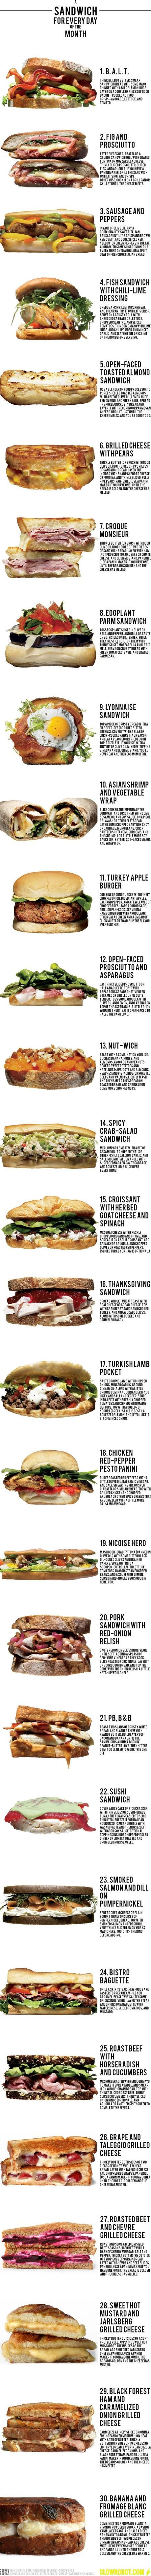 i needed to pin this because 1. sammiches.  and because 2. it is a thing of beauty.  and 3. some of the sammiches have bacon, egg, or other good food on them.  and 4. sammiches.